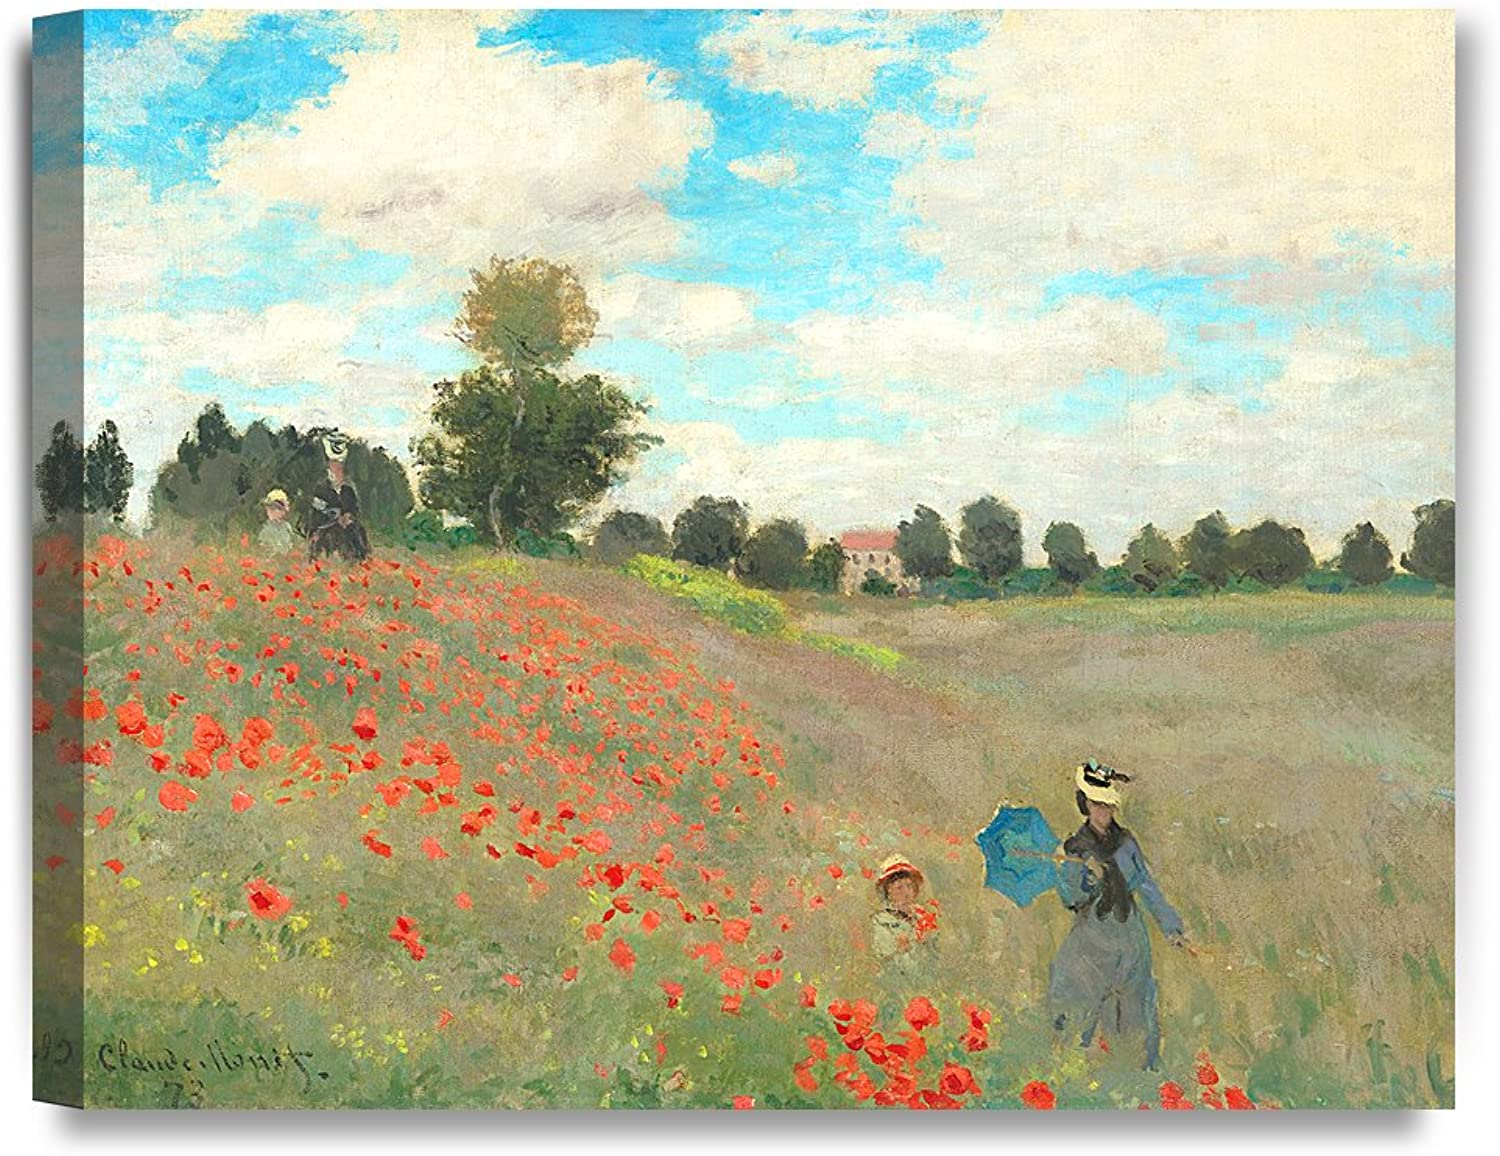 DECORARTS Poppies at silvereuil 1873 Claude Monet Art Art Art Reproduction. Giclee Canvas Prints Wall Art for Home Decor 20x16 00760a